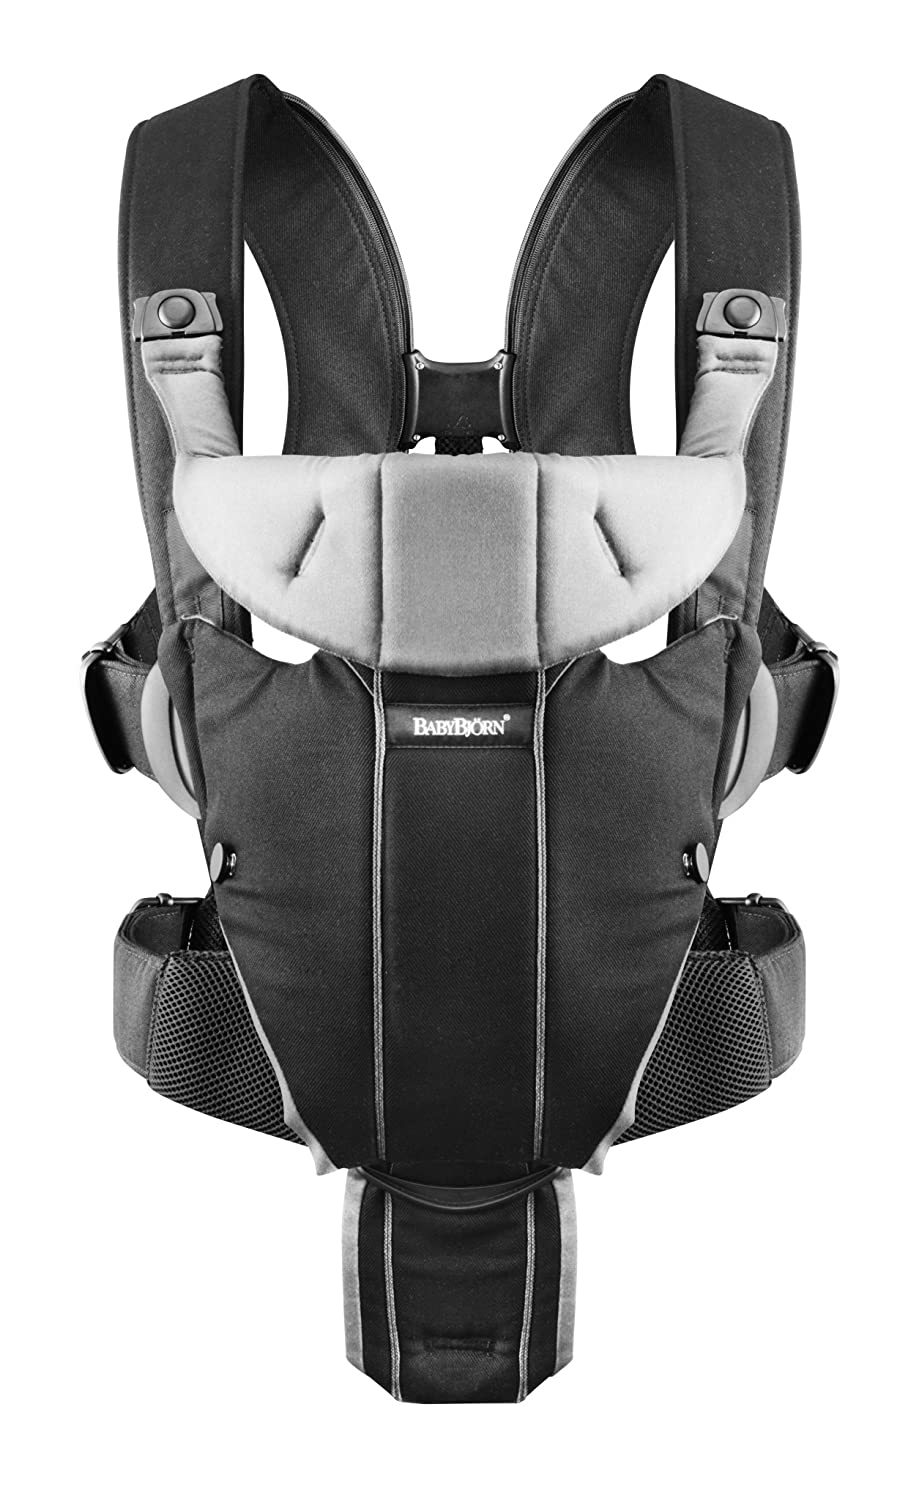 aa7088b69cd BABYBJÖRN Baby Carrier Miracle (Black/Silver, Cotton Mix): Amazon.co.uk:  Baby